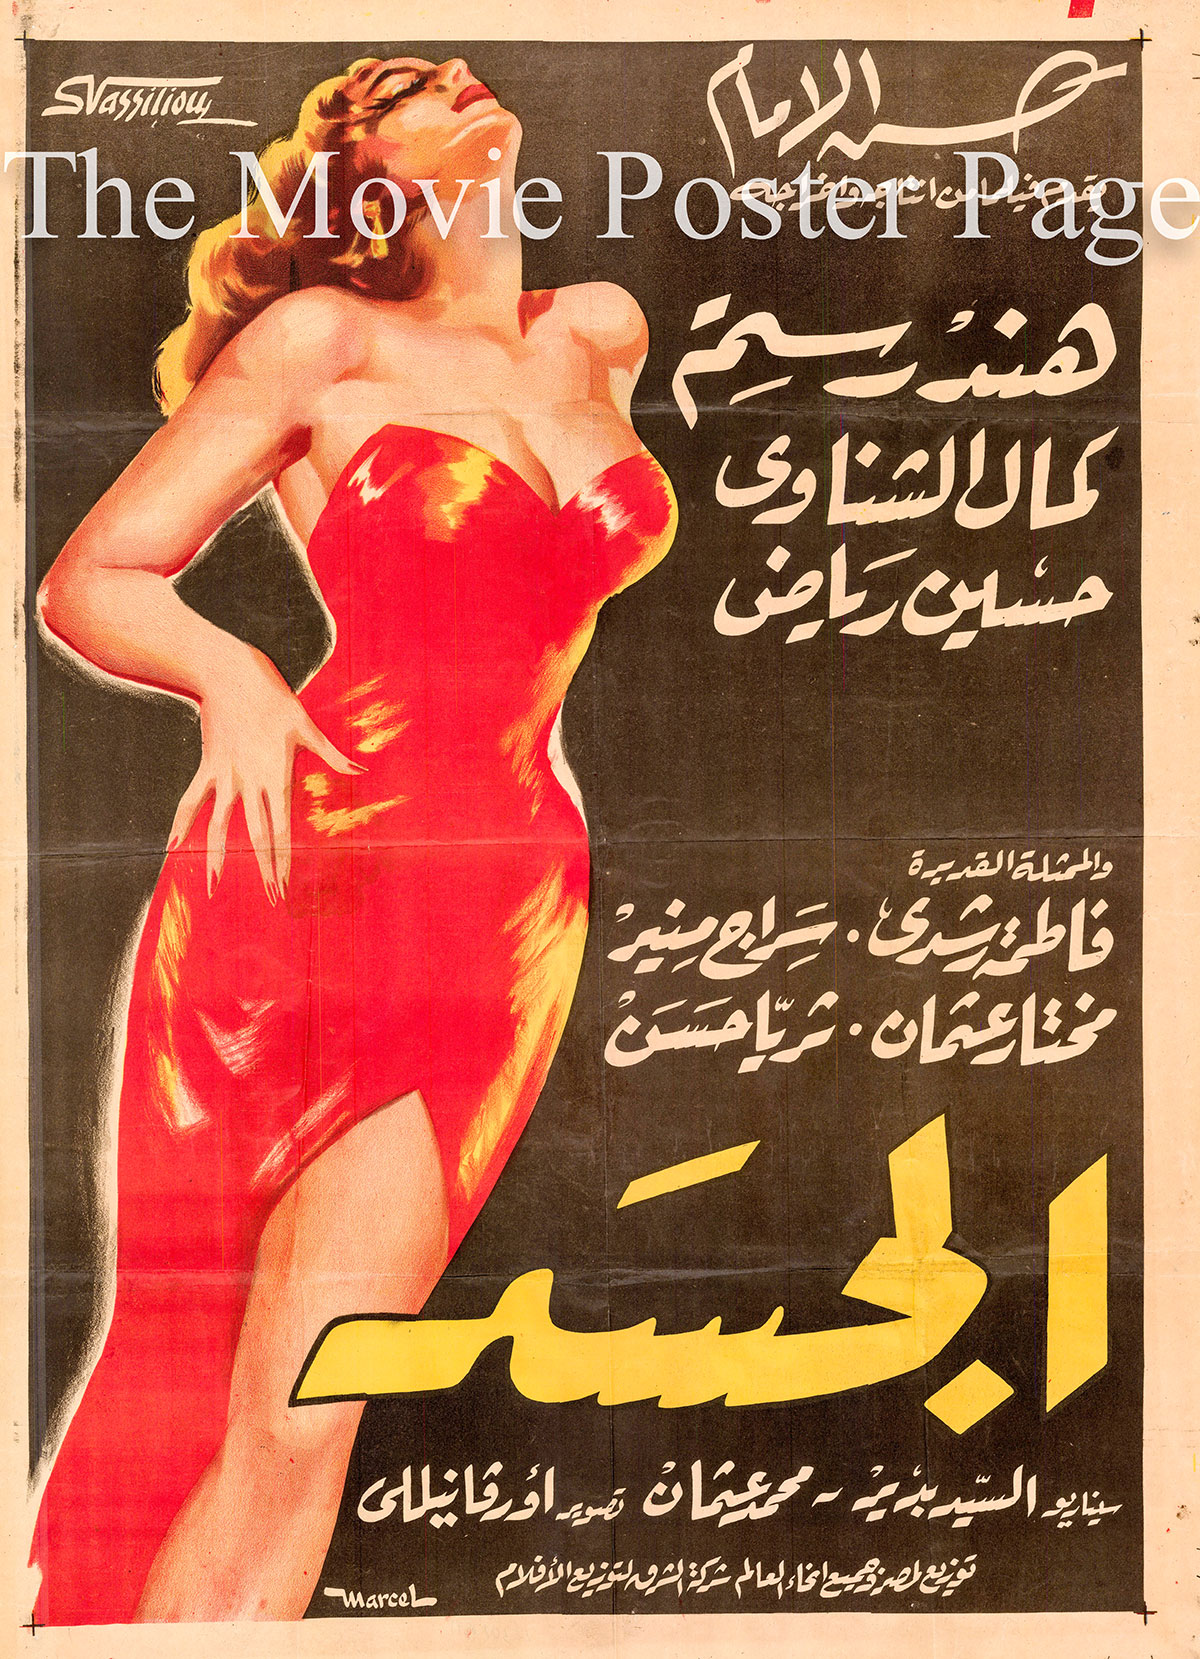 Pictured is an Egyptian promotional poster for the 1955 Hassan Al Imam film Flesh starring Hind Rostom.